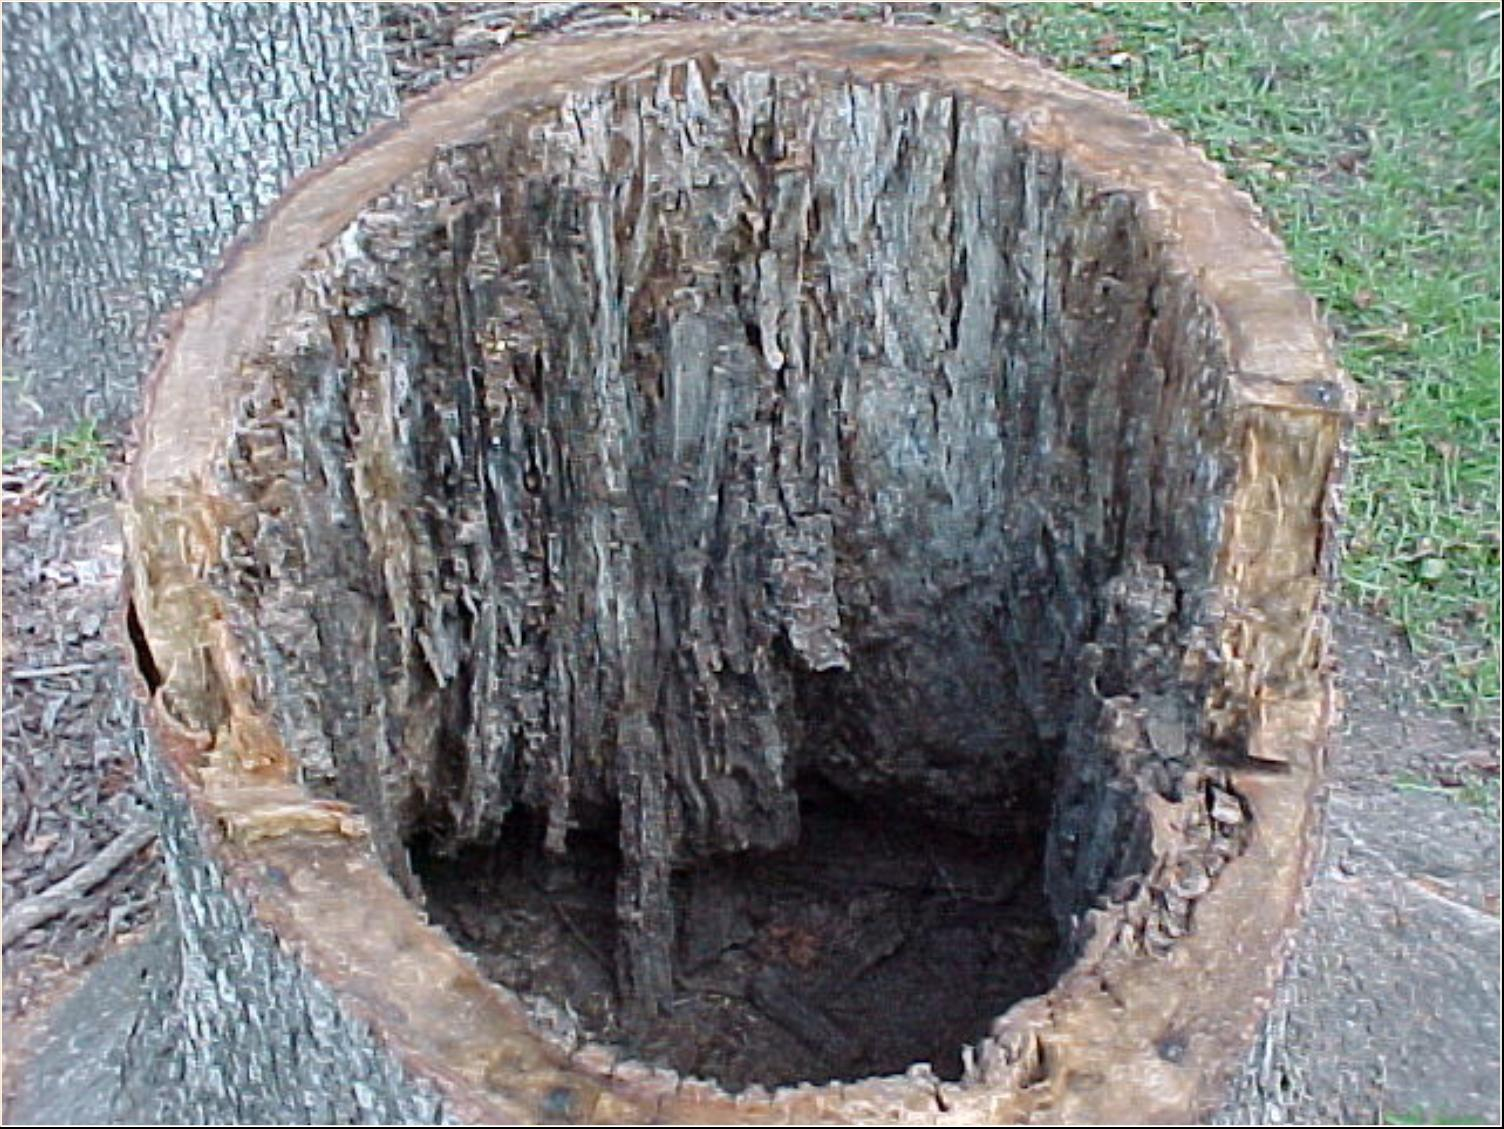 termite damage to trees